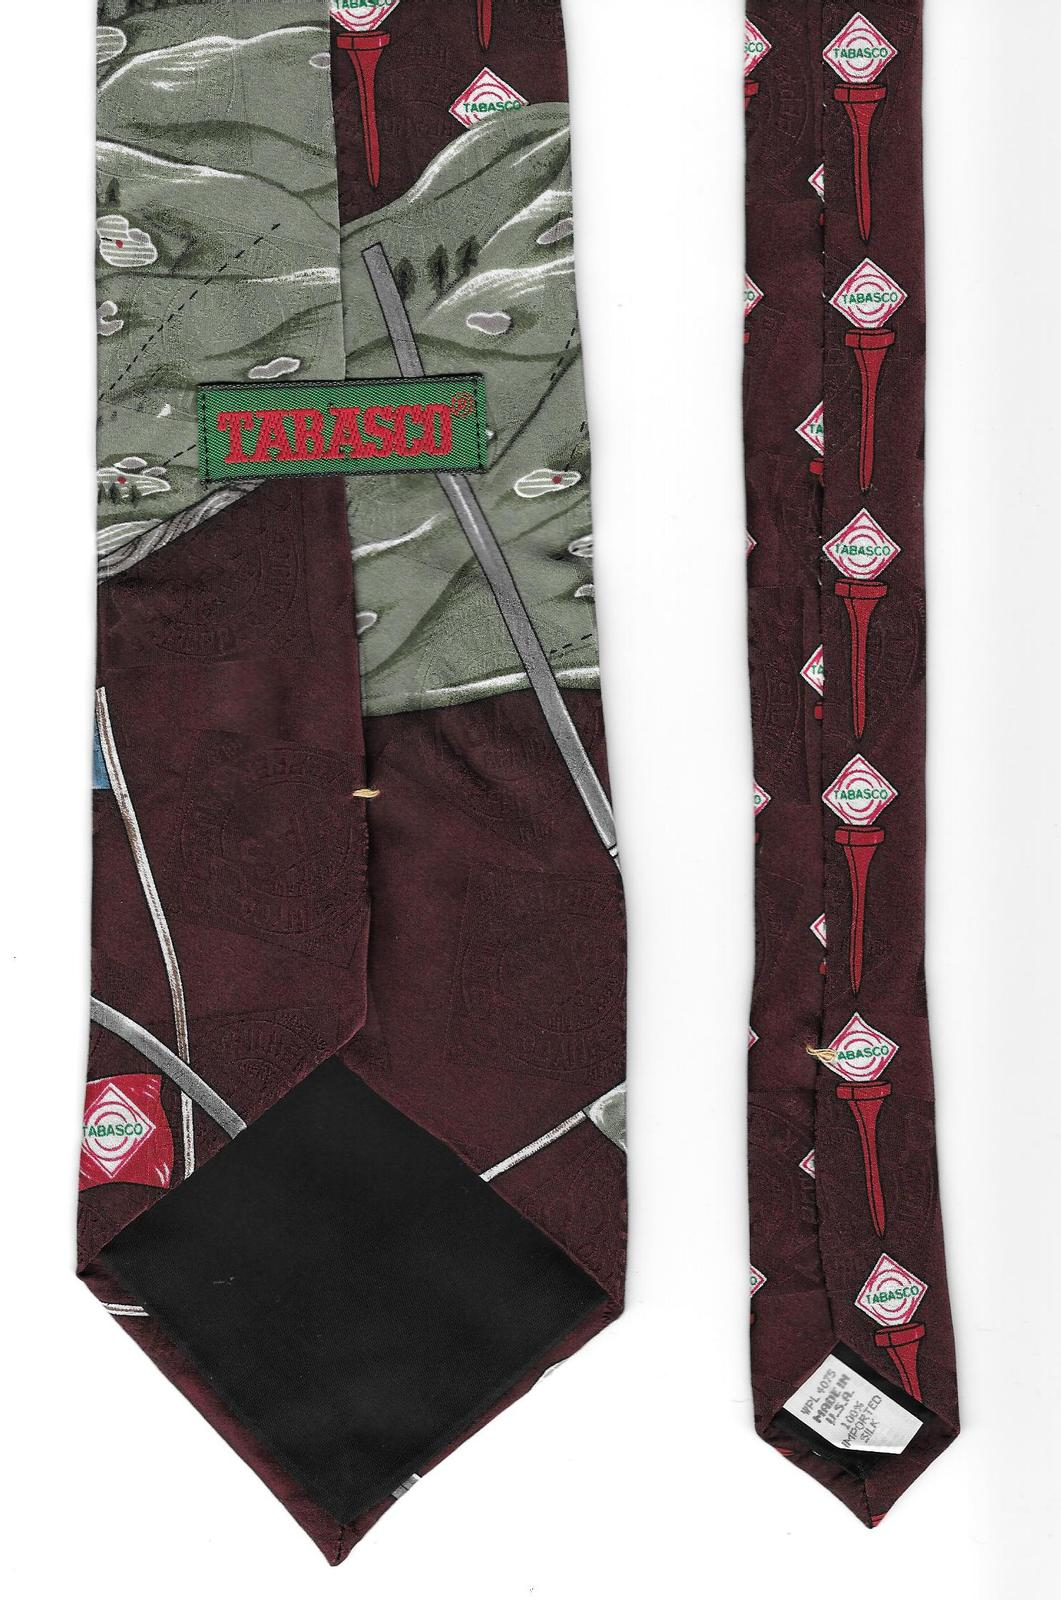 Tabasco Neck Tie Golf Clubs Pepper Sauce brown silk logo novelty necktie N3